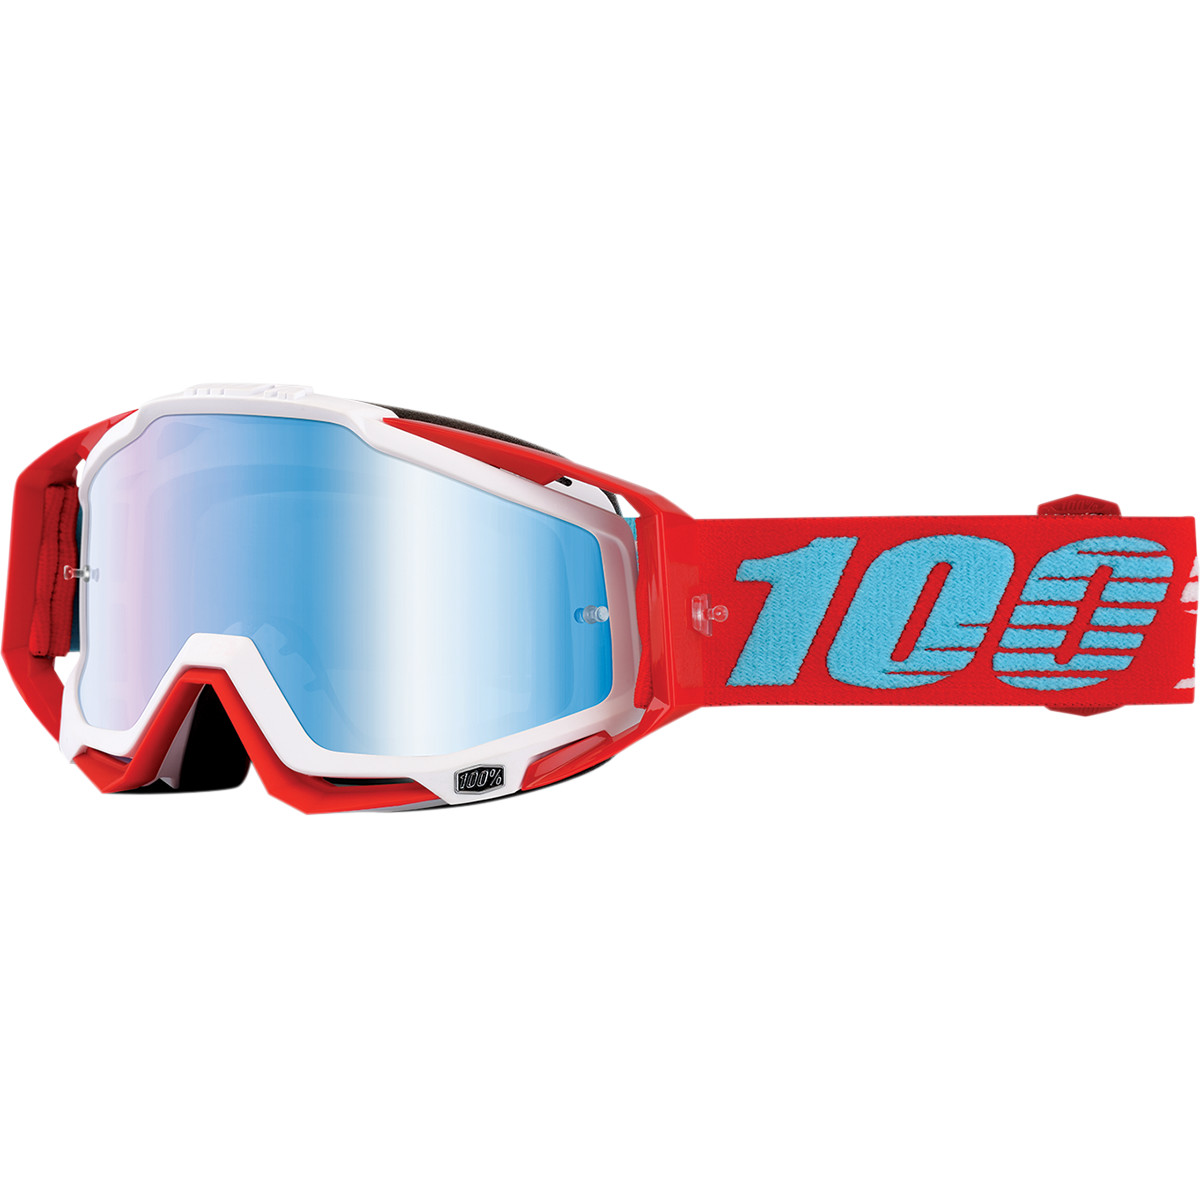 racecraft goggles [2601-2137] 1